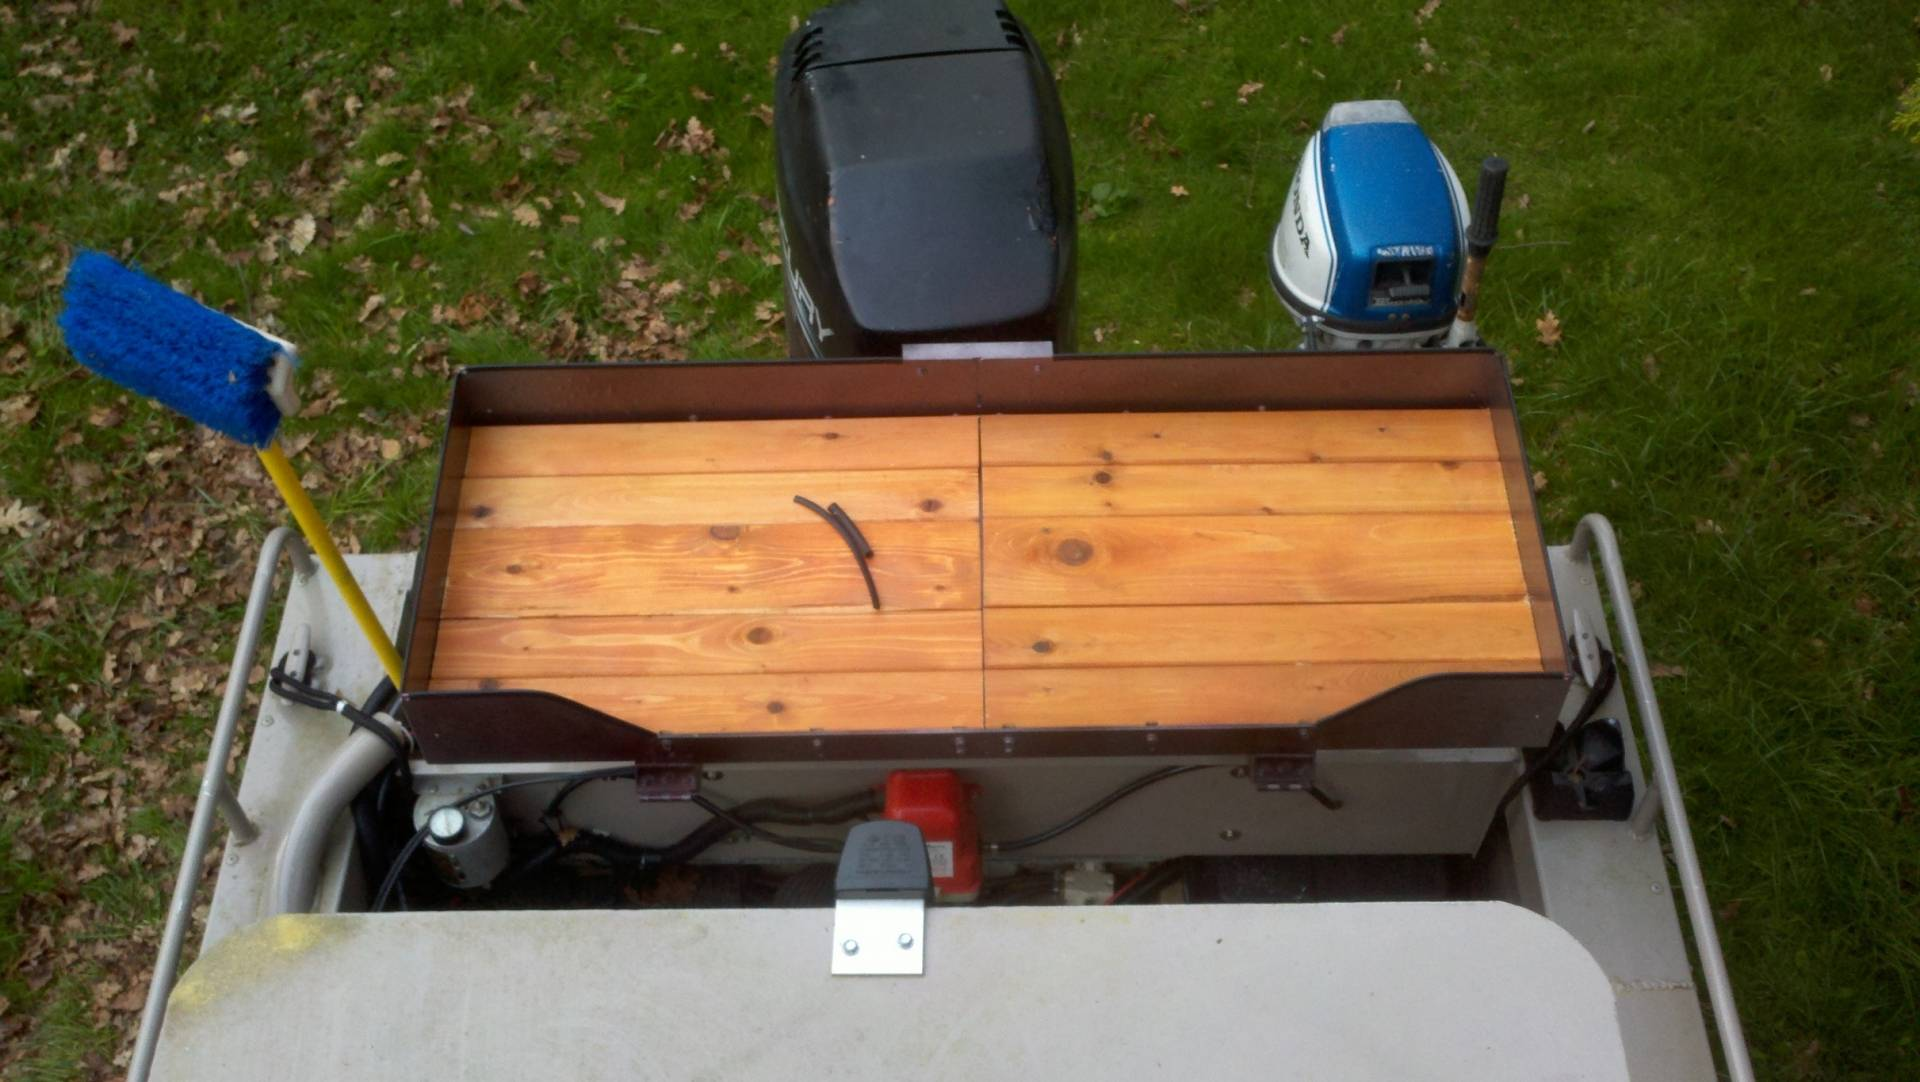 Homemade fish cleaning station bloodydecks for Homemade fish cleaning table